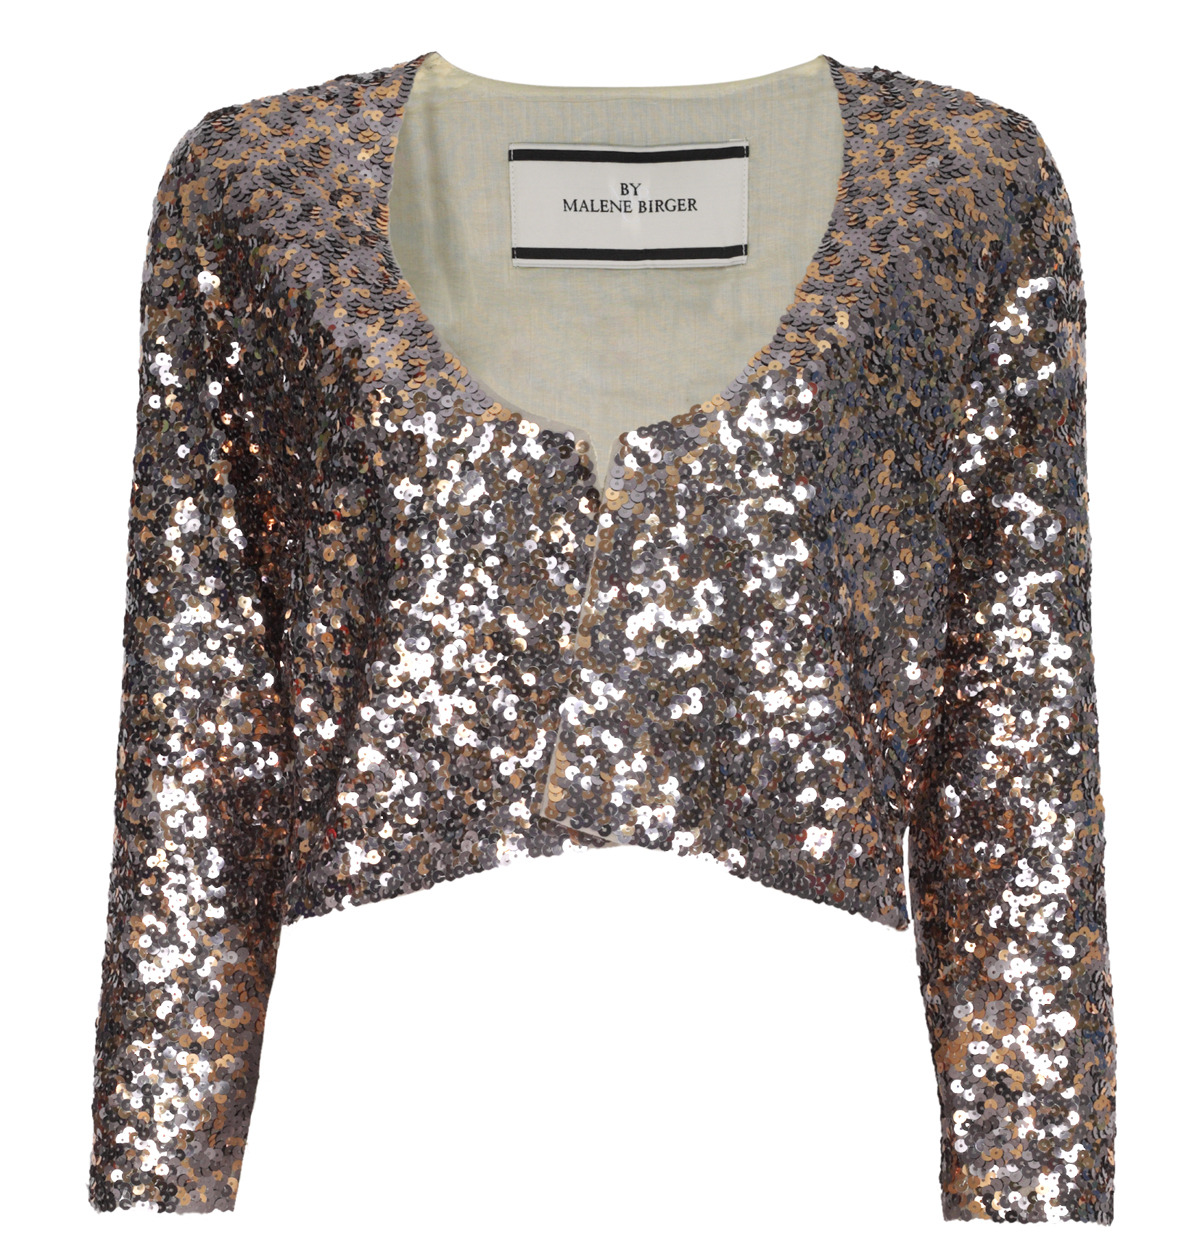 Mastyka Sequinned Embellished Jacket - pattern: plain; collar: round collar/collarless; length: cropped; style: boxy; occasions: evening, occasion; fit: straight cut (boxy); fibres: polyester/polyamide - stretch; material texture: metallic; predominant colour: multicoloured; sleeve length: 3/4 length; sleeve style: standard; collar break: high; pattern type: fabric; pattern size: standard; embellishment: sequins